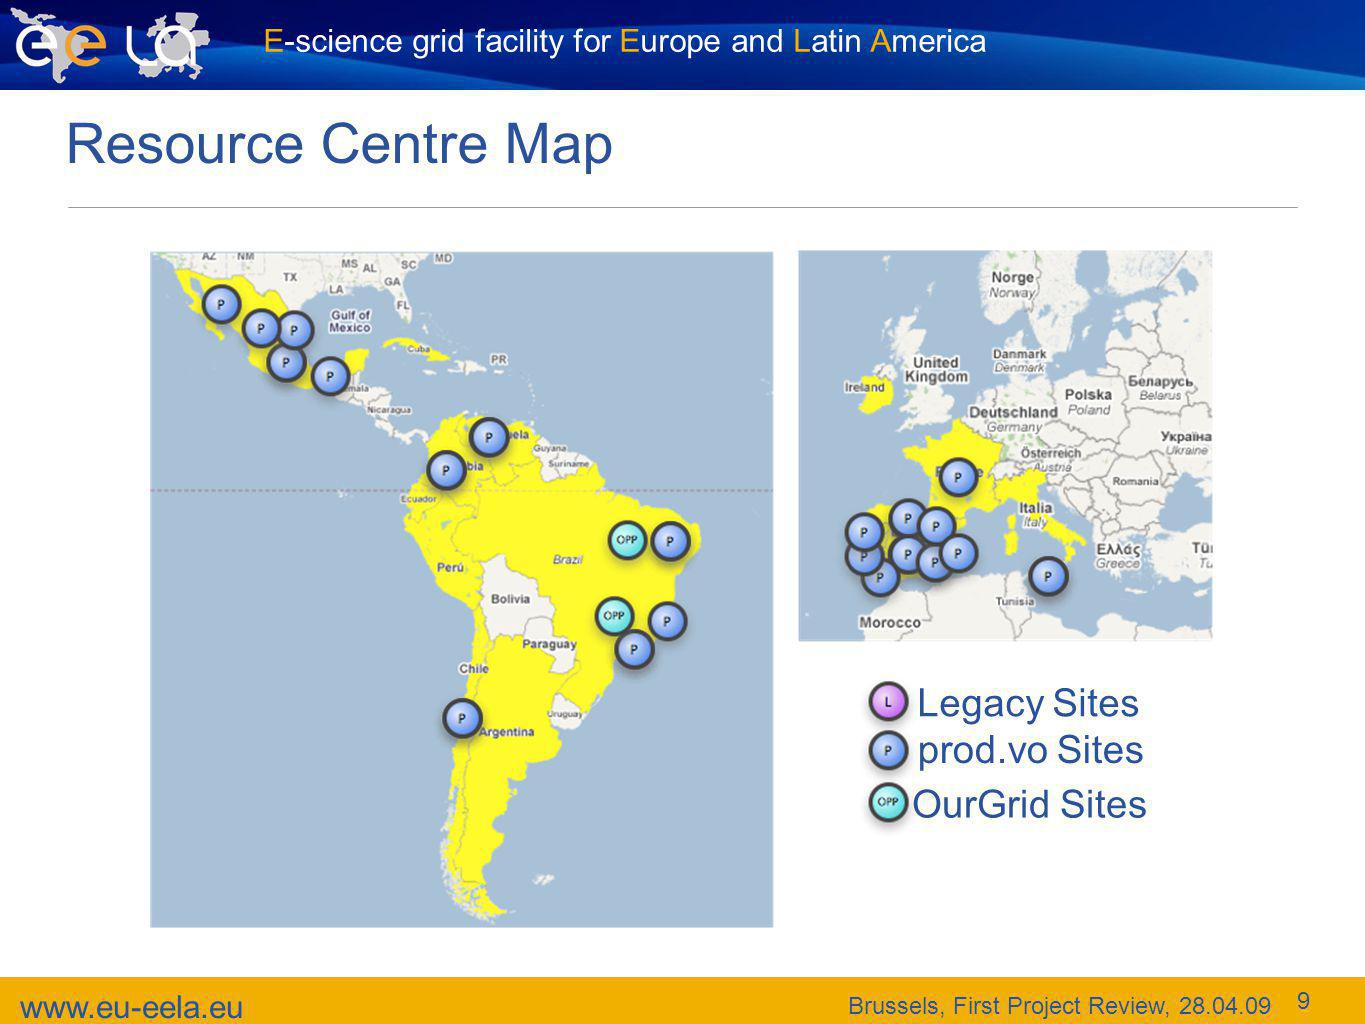 E-science grid facility for Europe and Latin America www.eu-eela.eu Brussels, First Project Review, 28.04.09 9 Resource Centre Map Legacy Sites prod.vo Sites OurGrid Sites